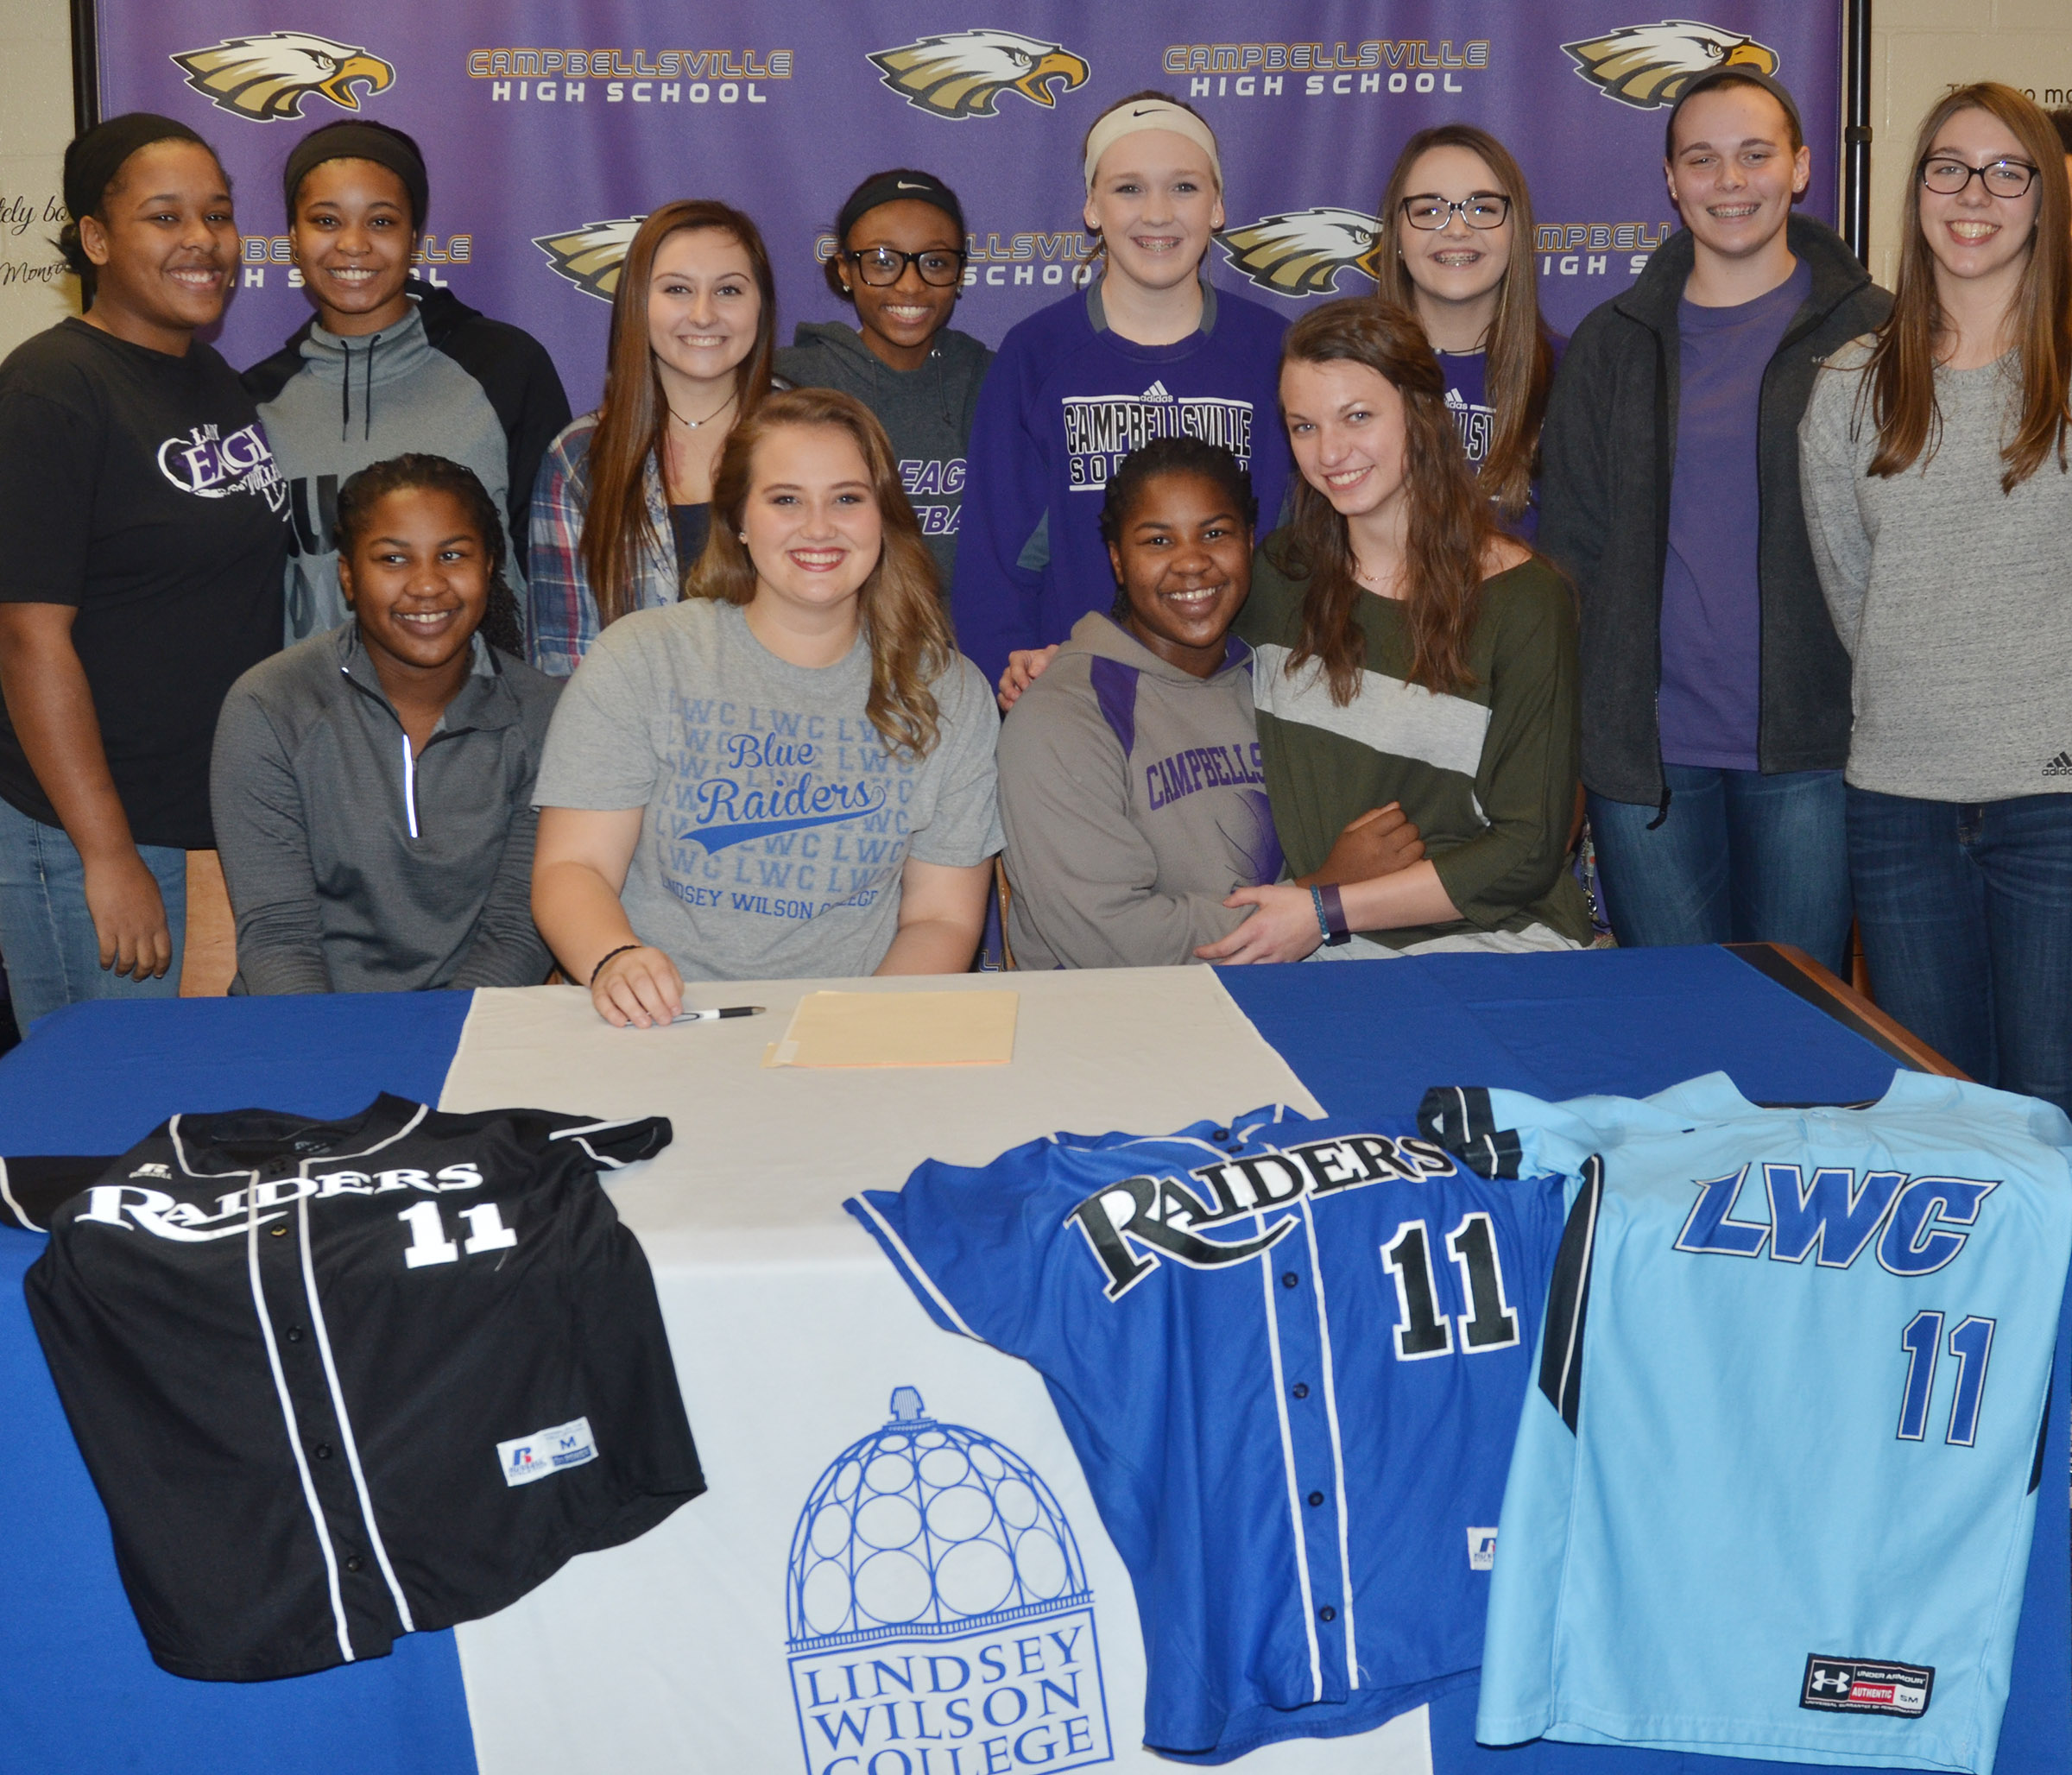 CHS senior Brenna Wethington has signed to continue her softball career at Lindsey Wilson College. She is pictured with her CHS girls' basketball teammates. From left, front, are junior Nena Barnett, Wethington, junior Kiyah Barnett and senior Caylie Blair. Back, juniors Kayla Young and Vonnea Smith, sophomore Reagan Knight, Campbellsville Middle School seventh-grader Bri Gowdy, CMS eighth-graders Catlyn Clausen and Kenzi Forbis, freshman Katelyn Miller and CMS eighth-grader Abi Wiedewitsch.